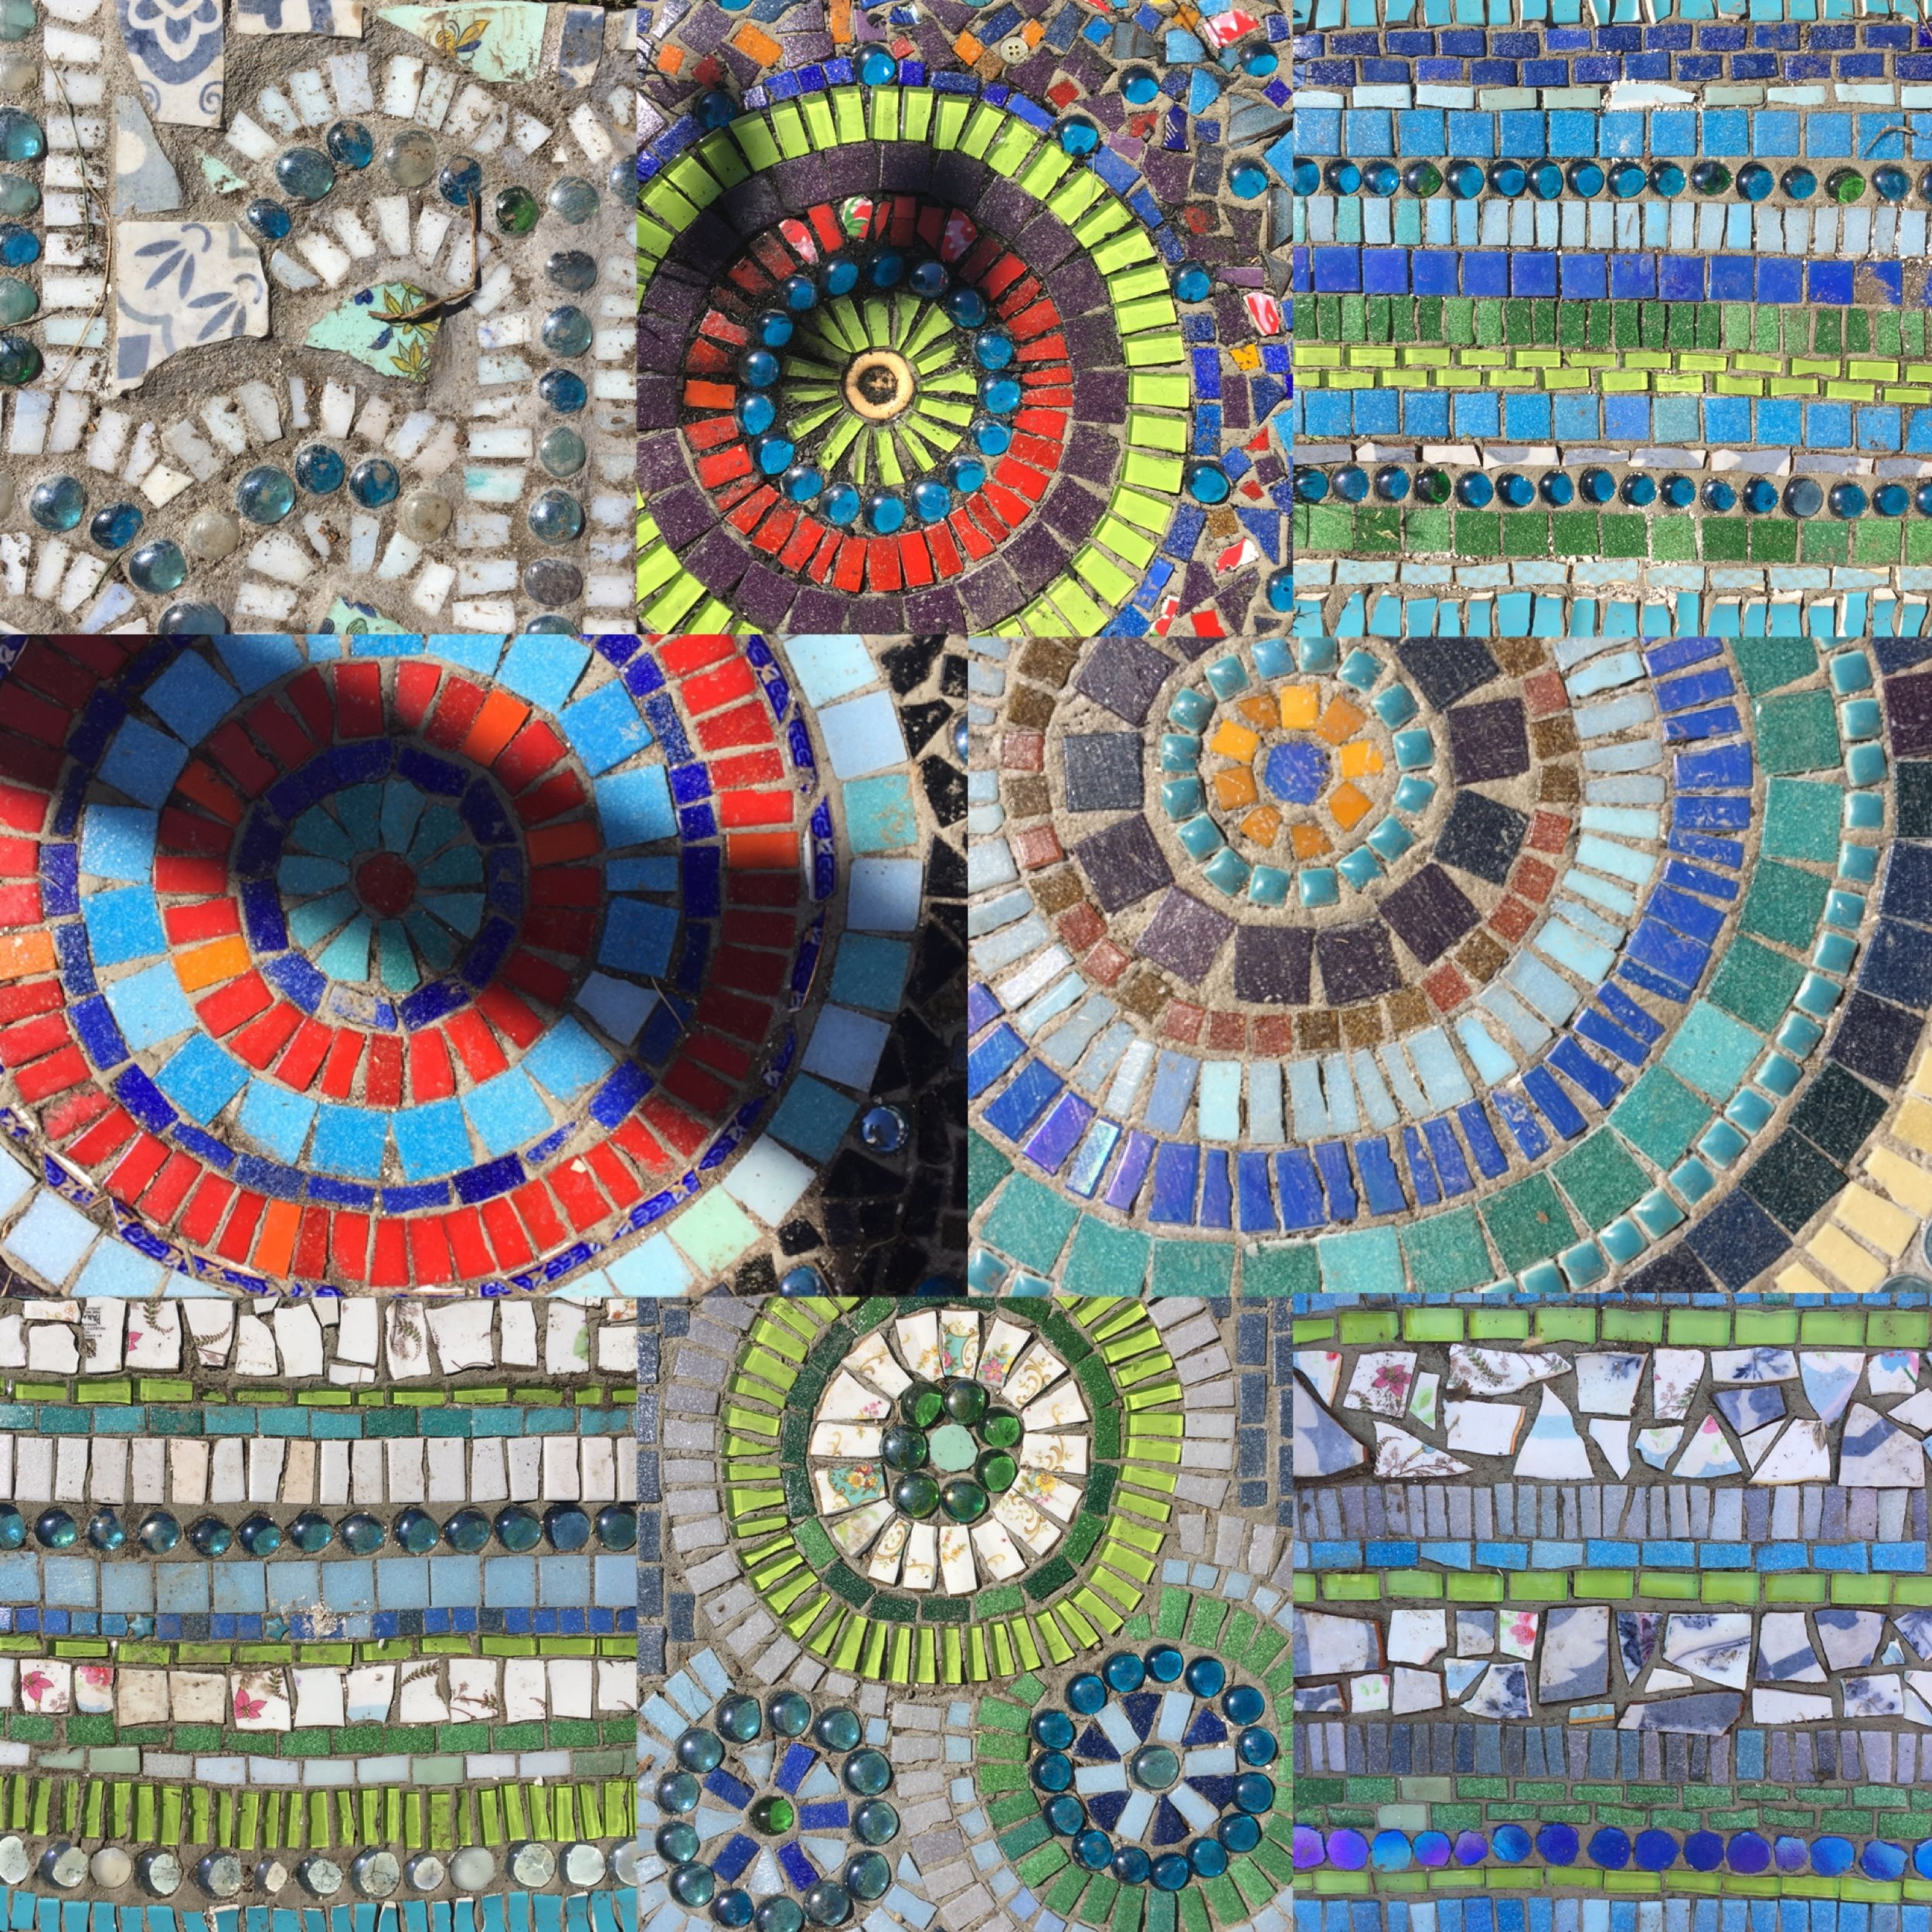 Claire's much admired mosaic paving slabs